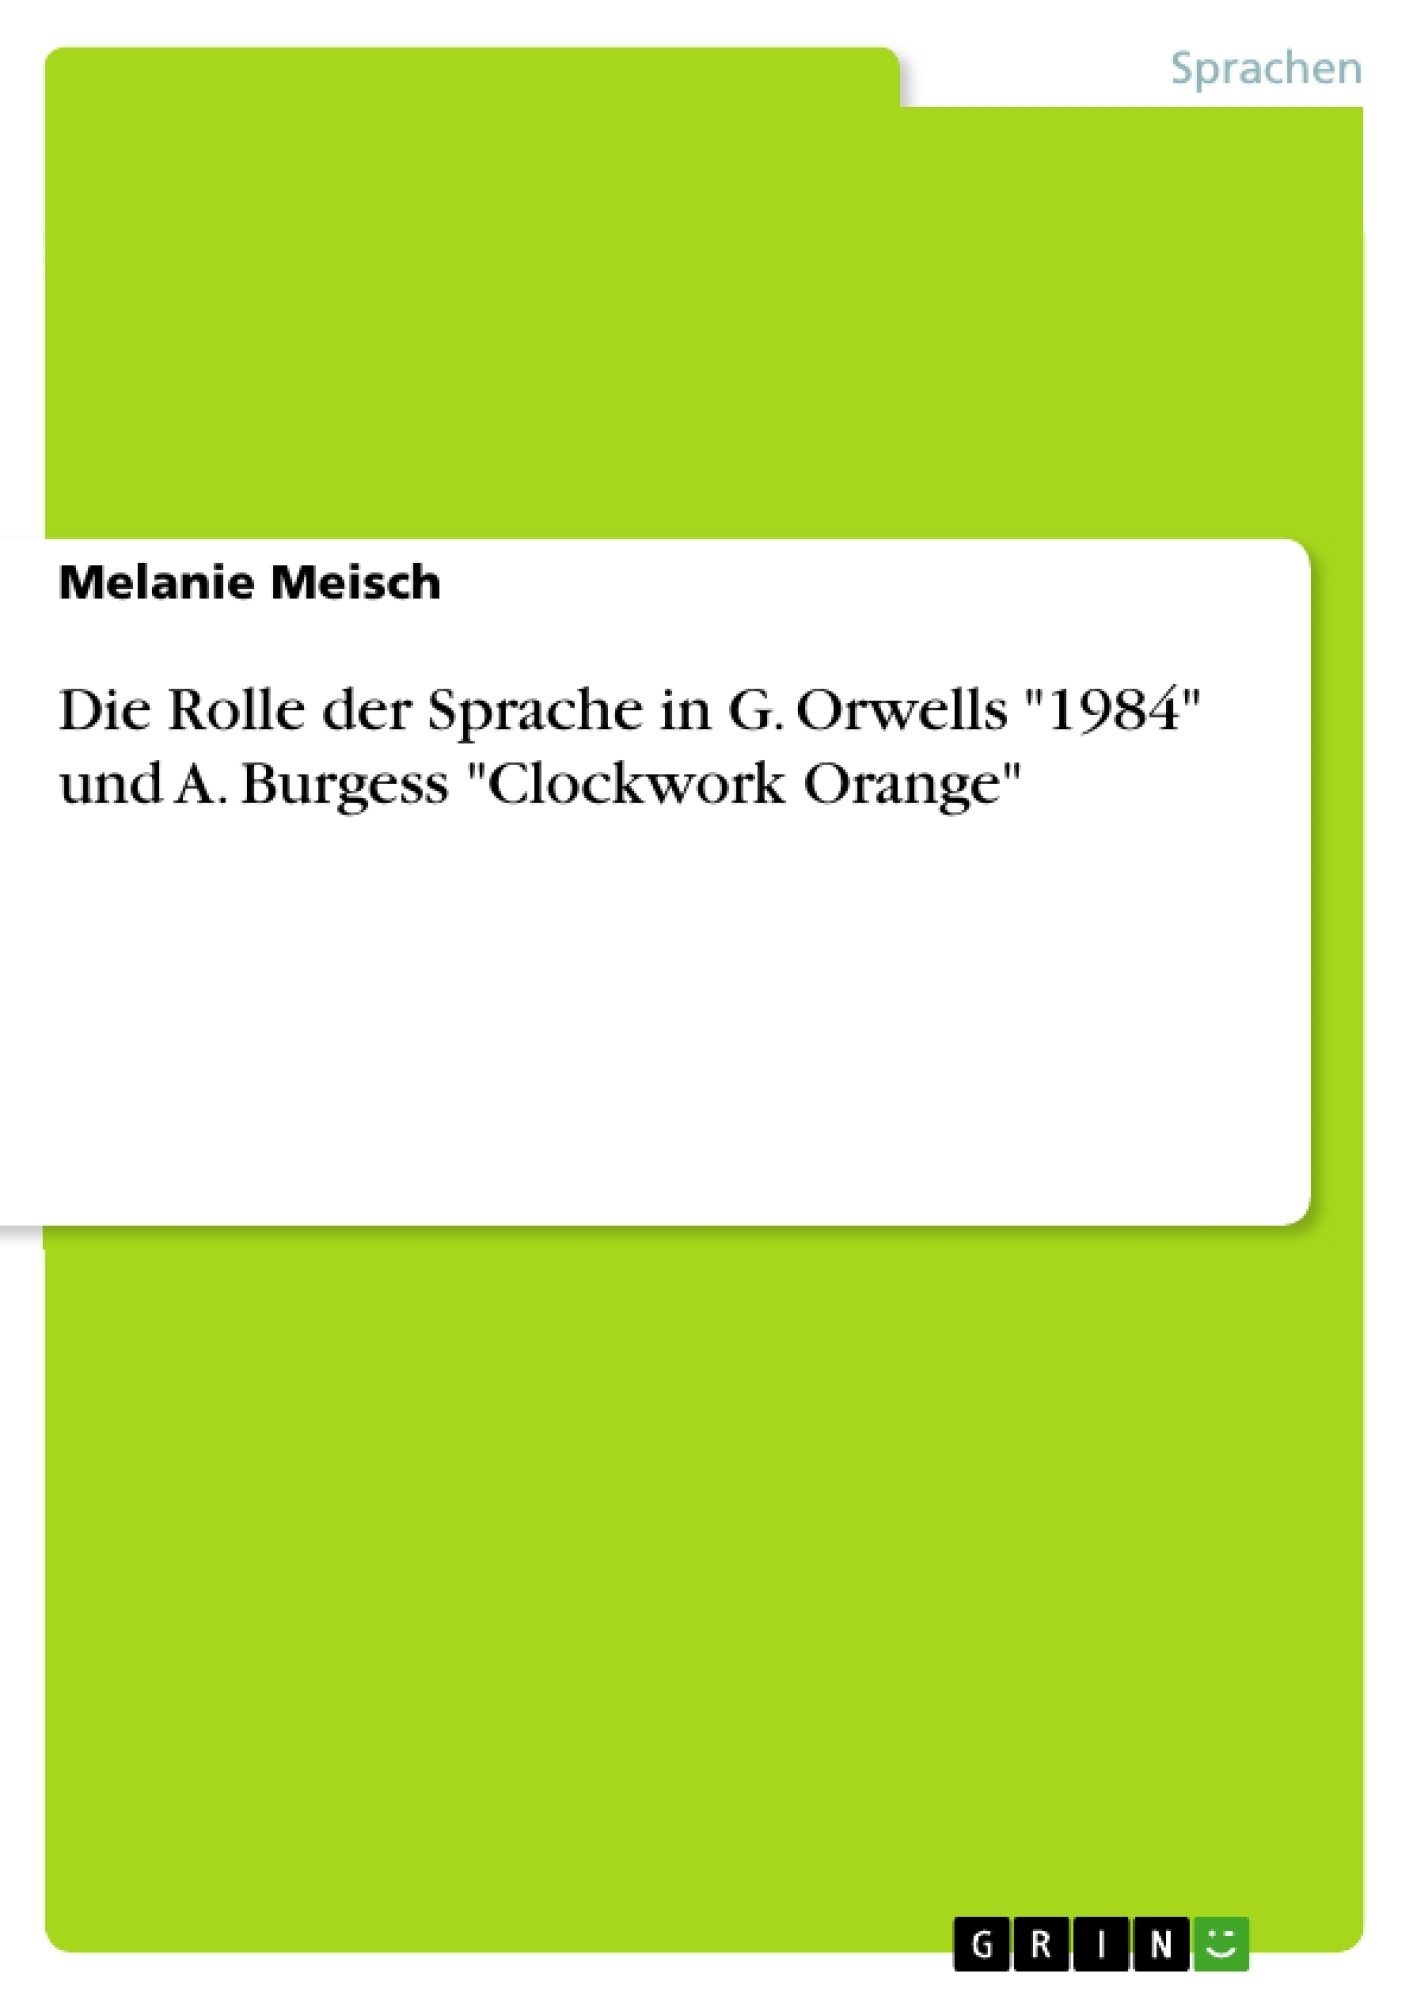 1984 clockwork orange essay